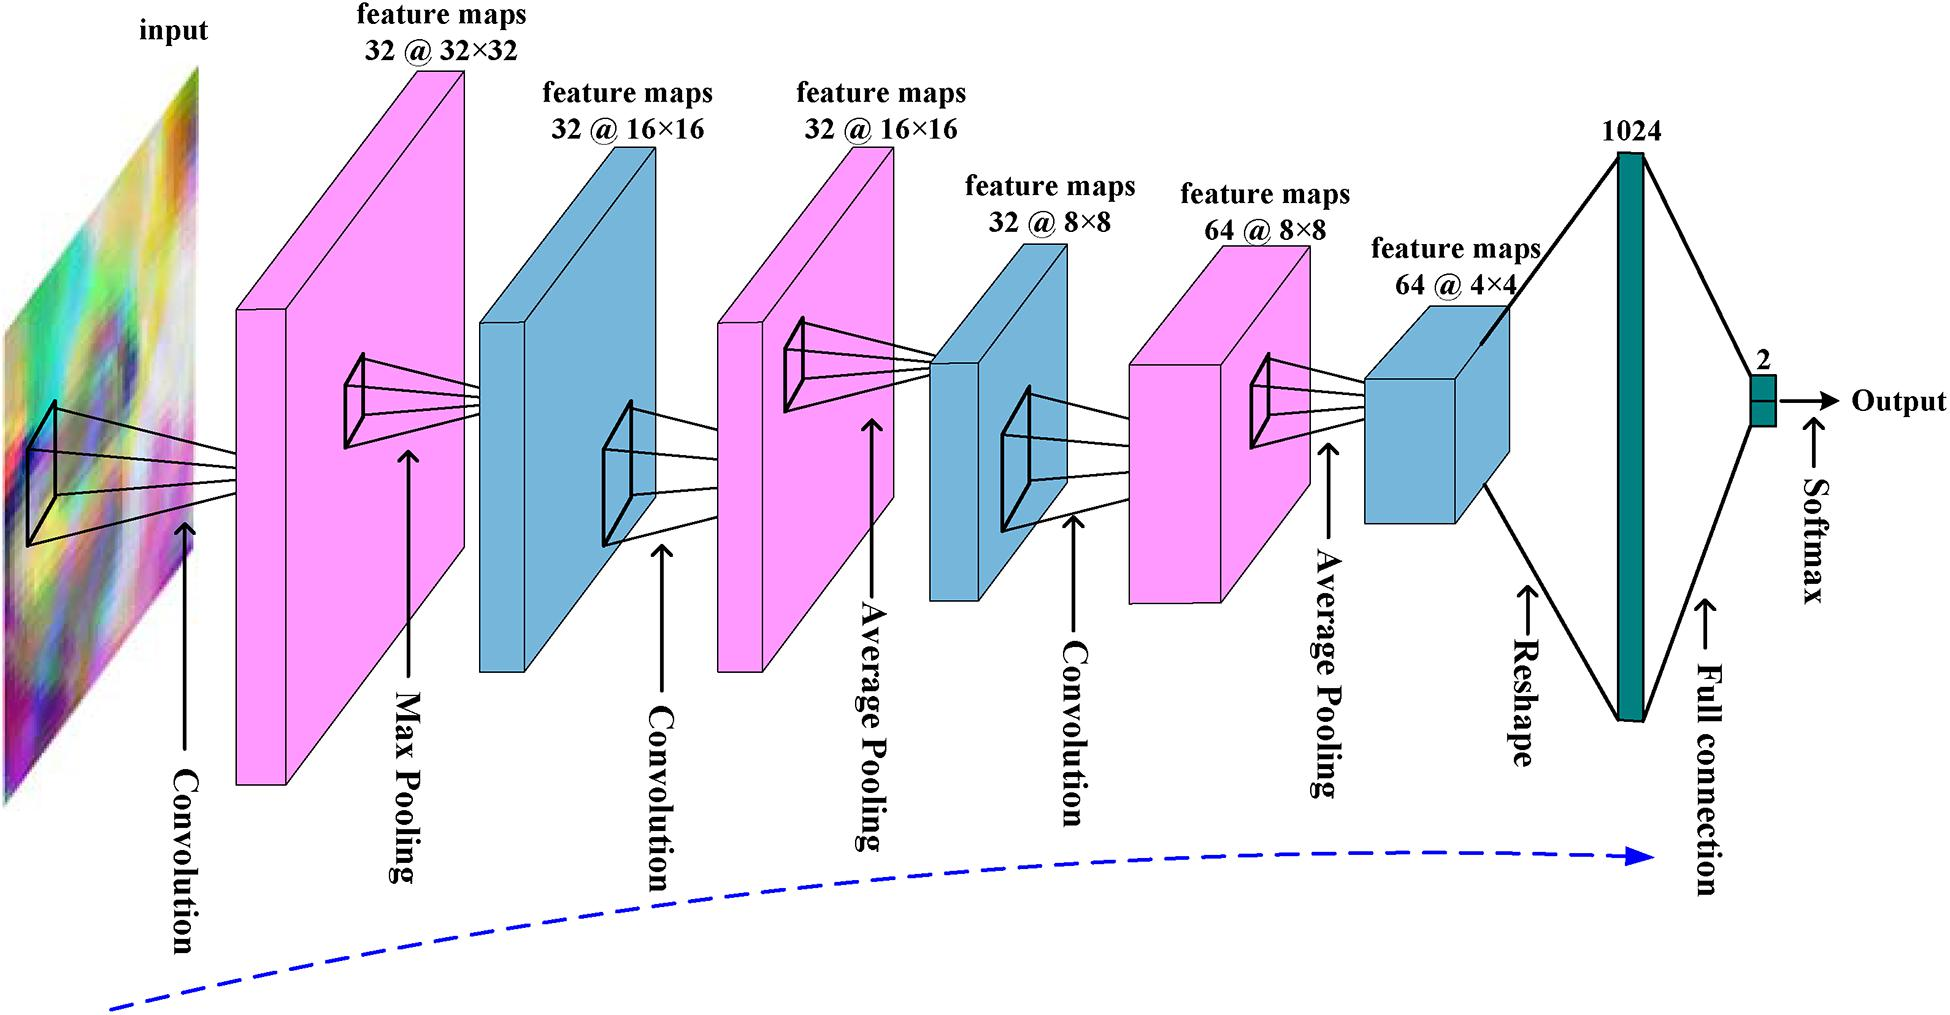 Frontiers | Convolutional Neural Networks-Based MRI Image